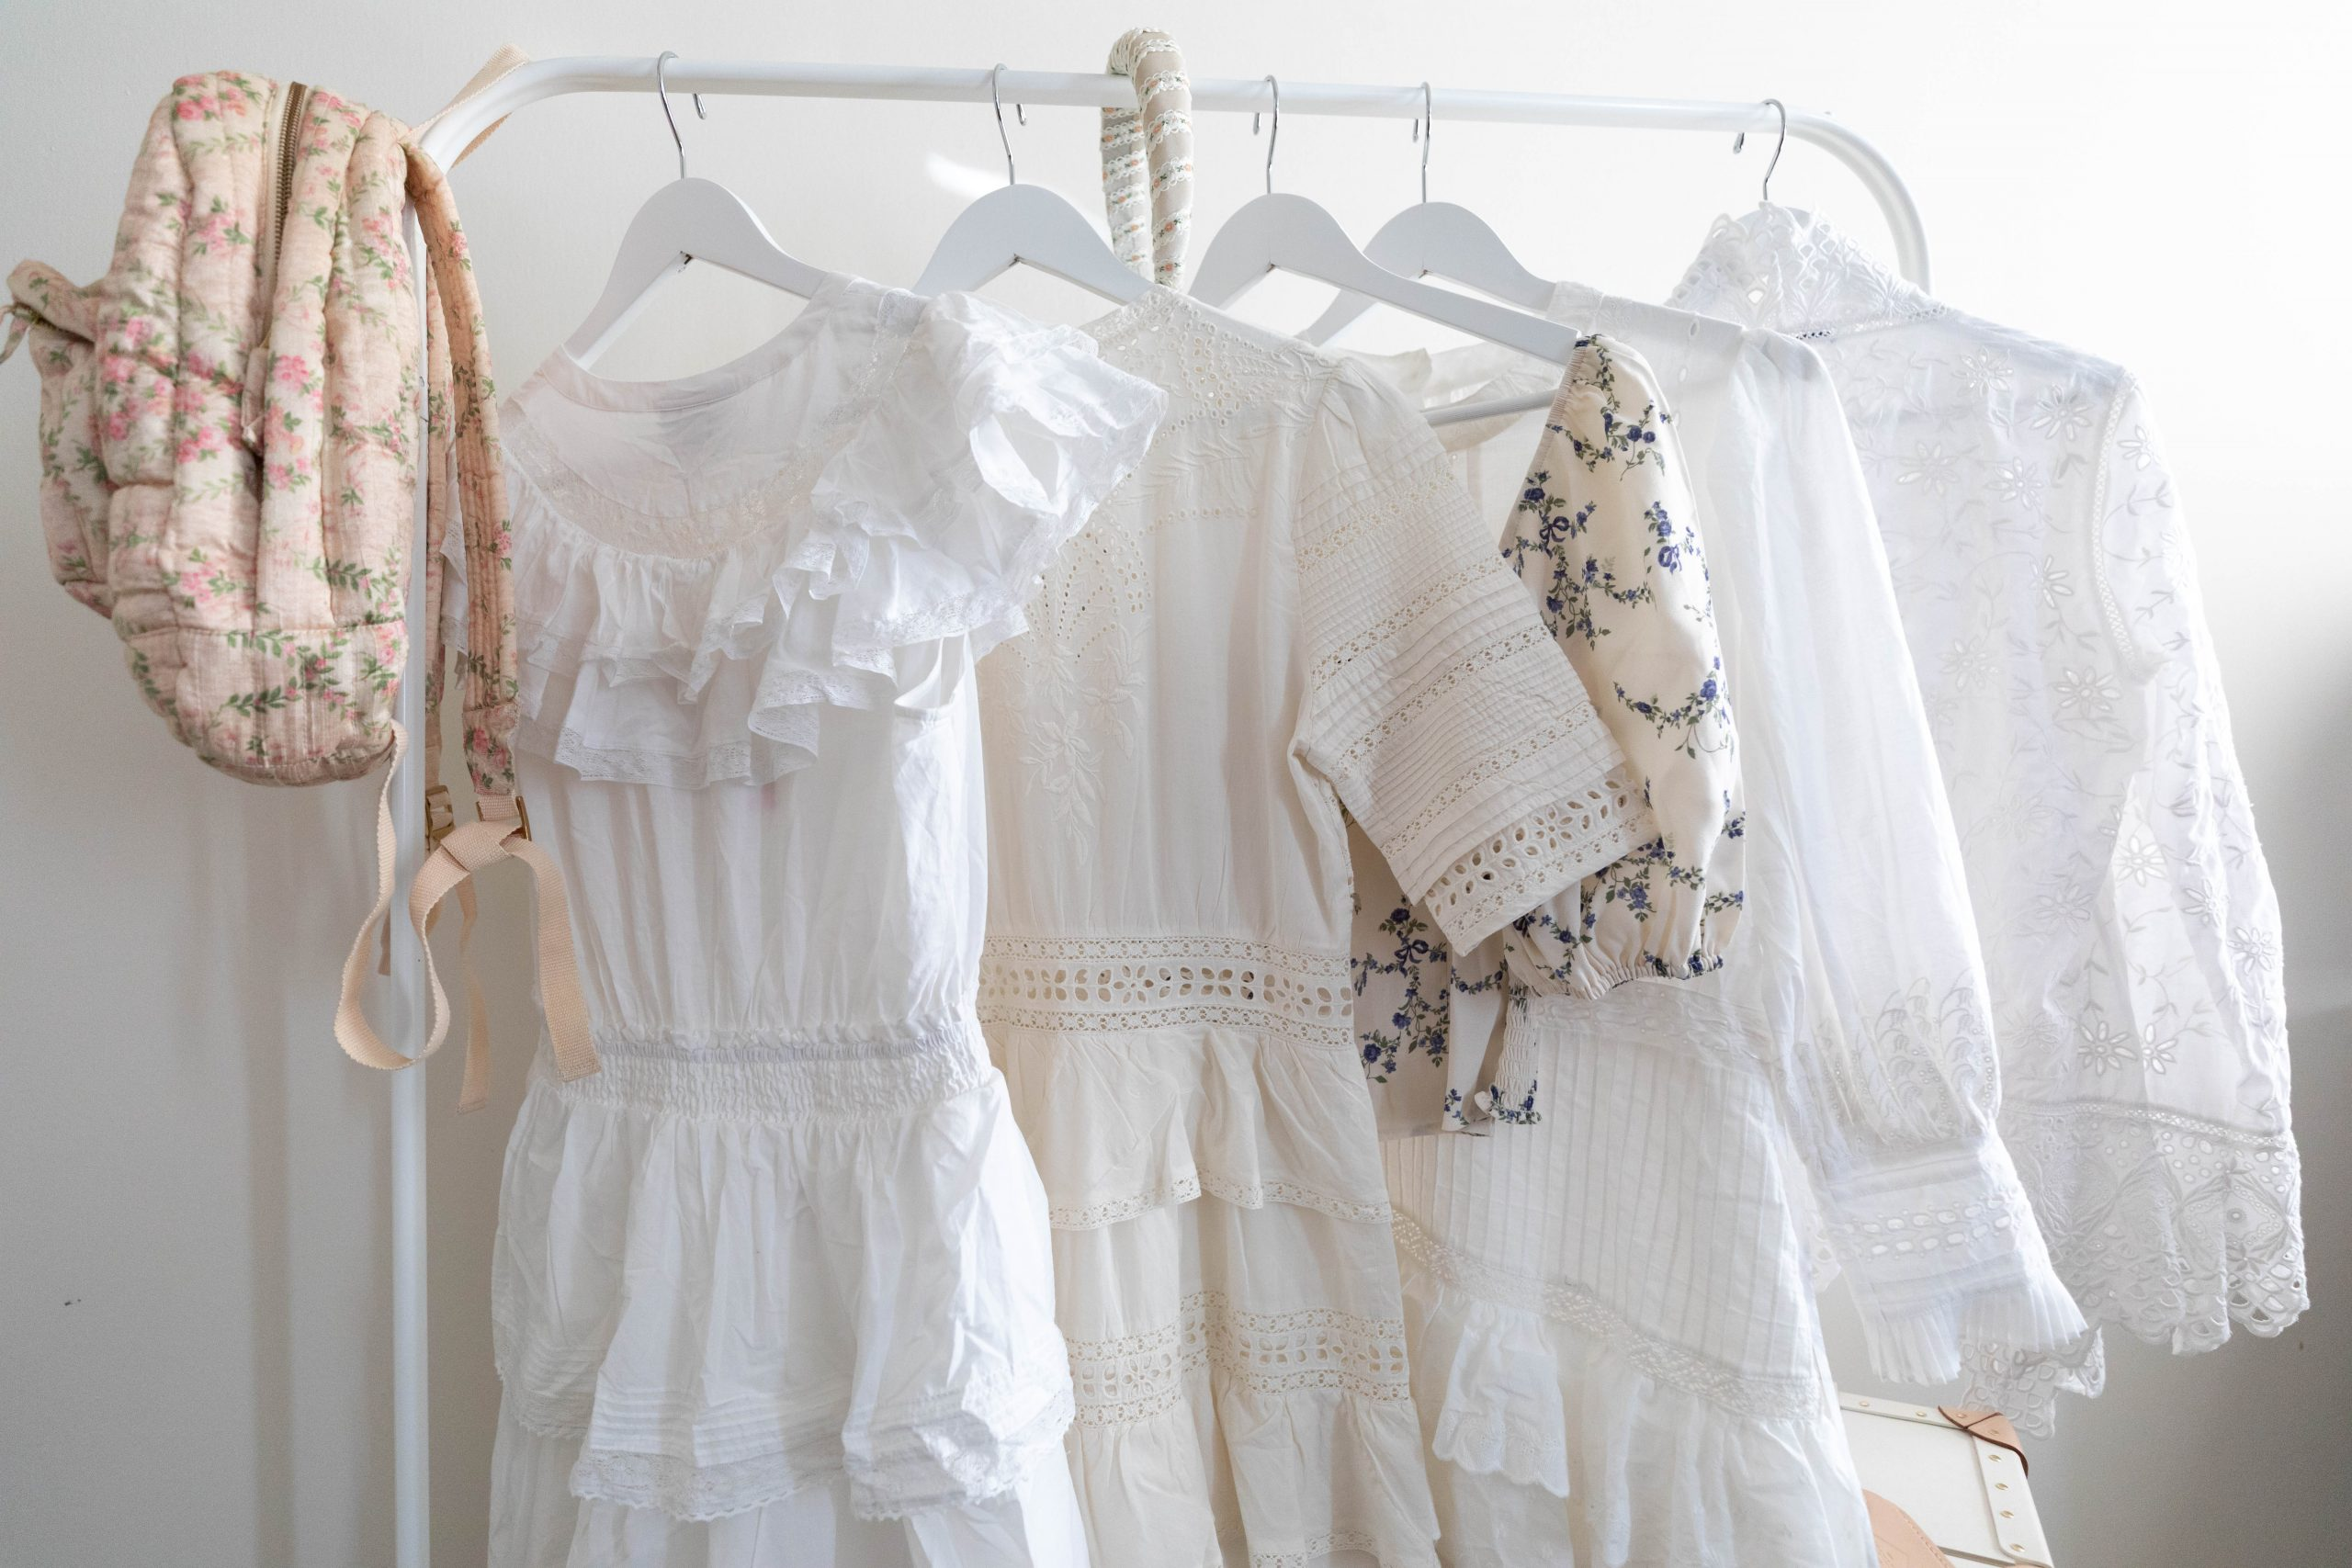 LoveShackFancy Dress and Accessory Sale Favorites Romantic Feminine Dresses